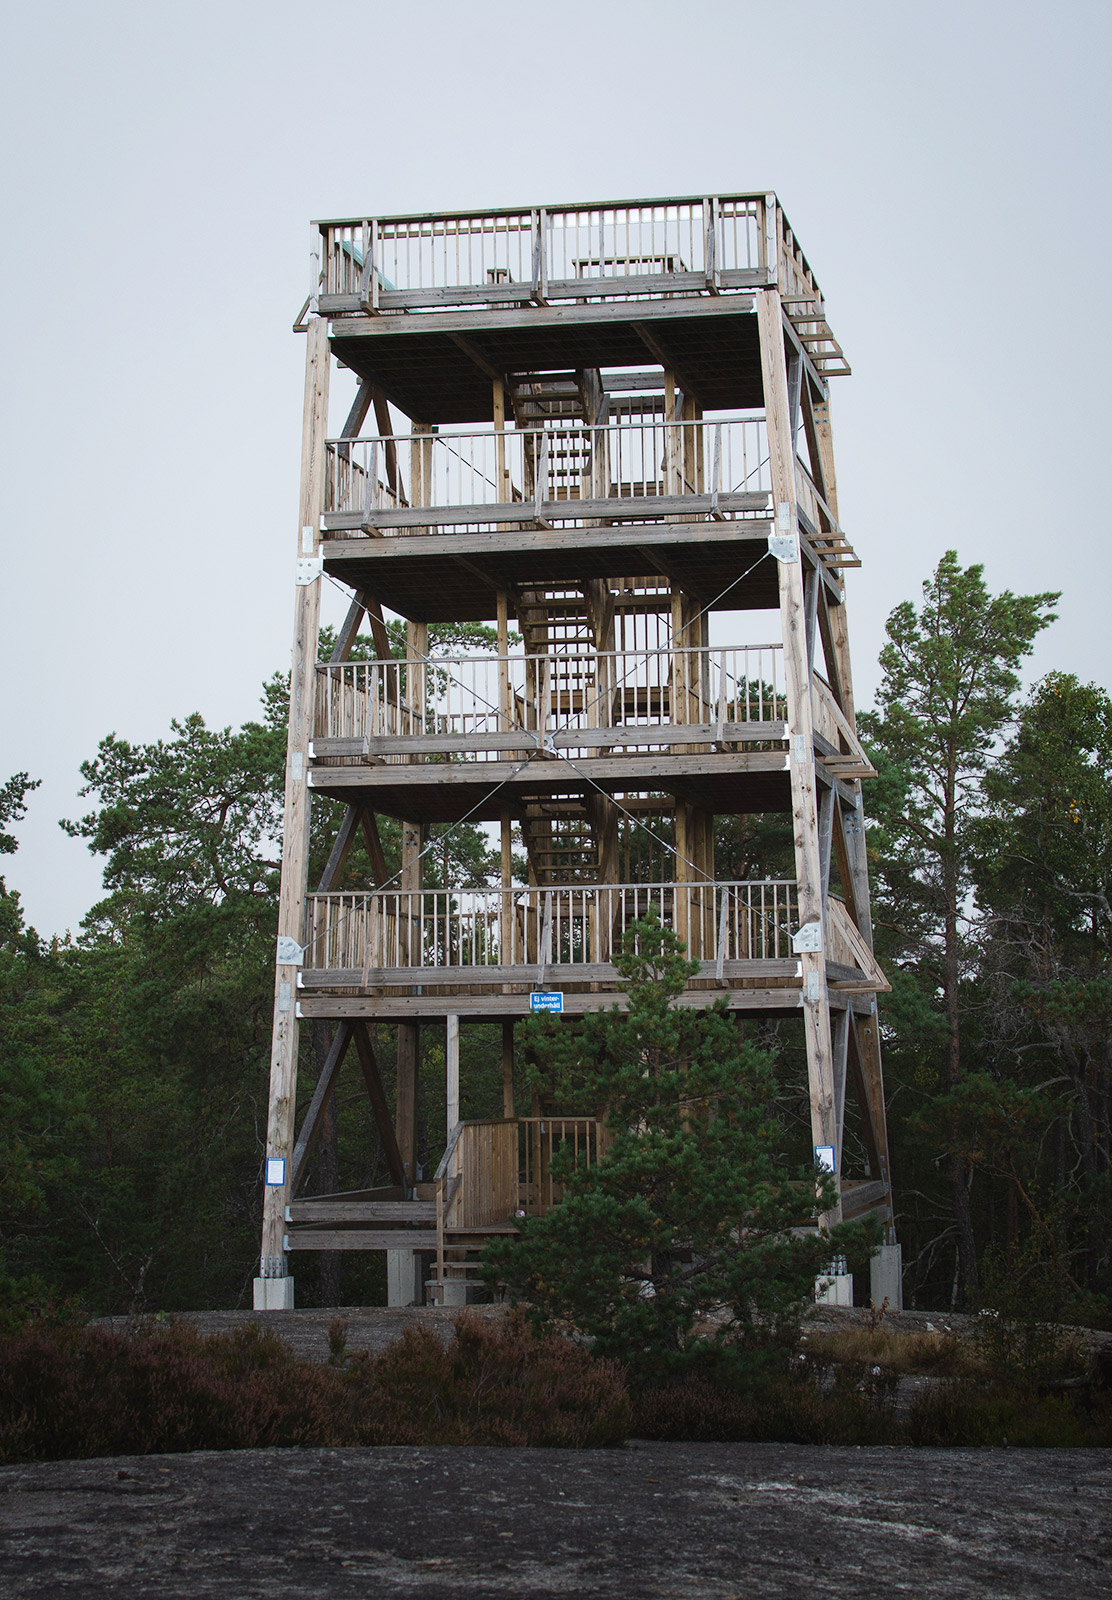 Wooden tower in the forest